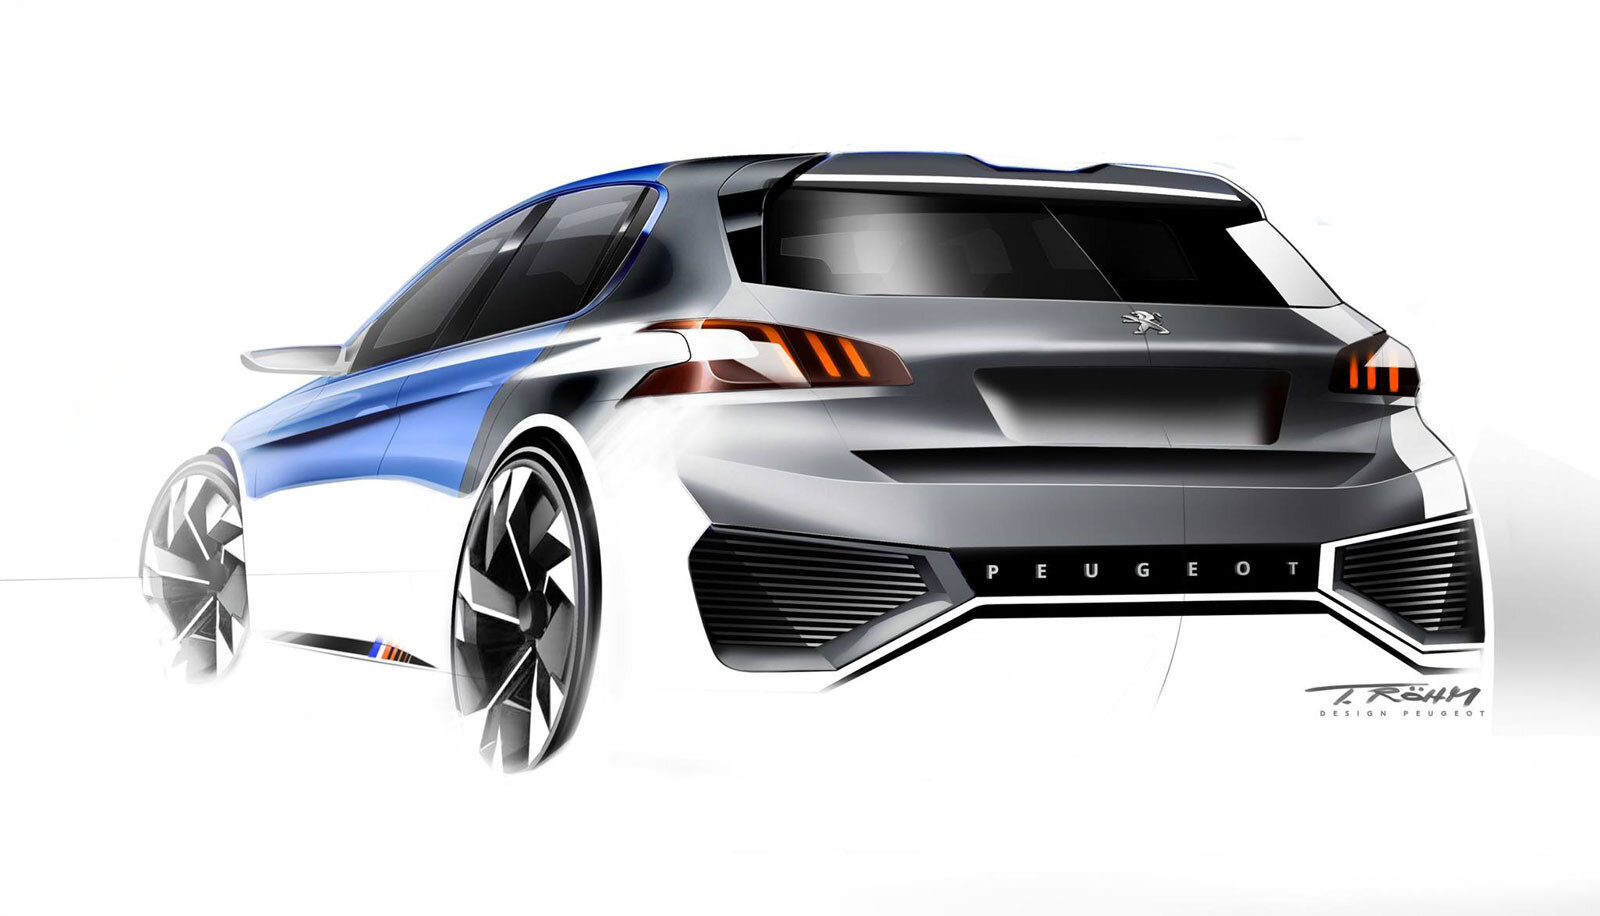 Peugeot-308-R-HYbrid-Concept-Design-Sketch-by-Thomas-Rohm-01